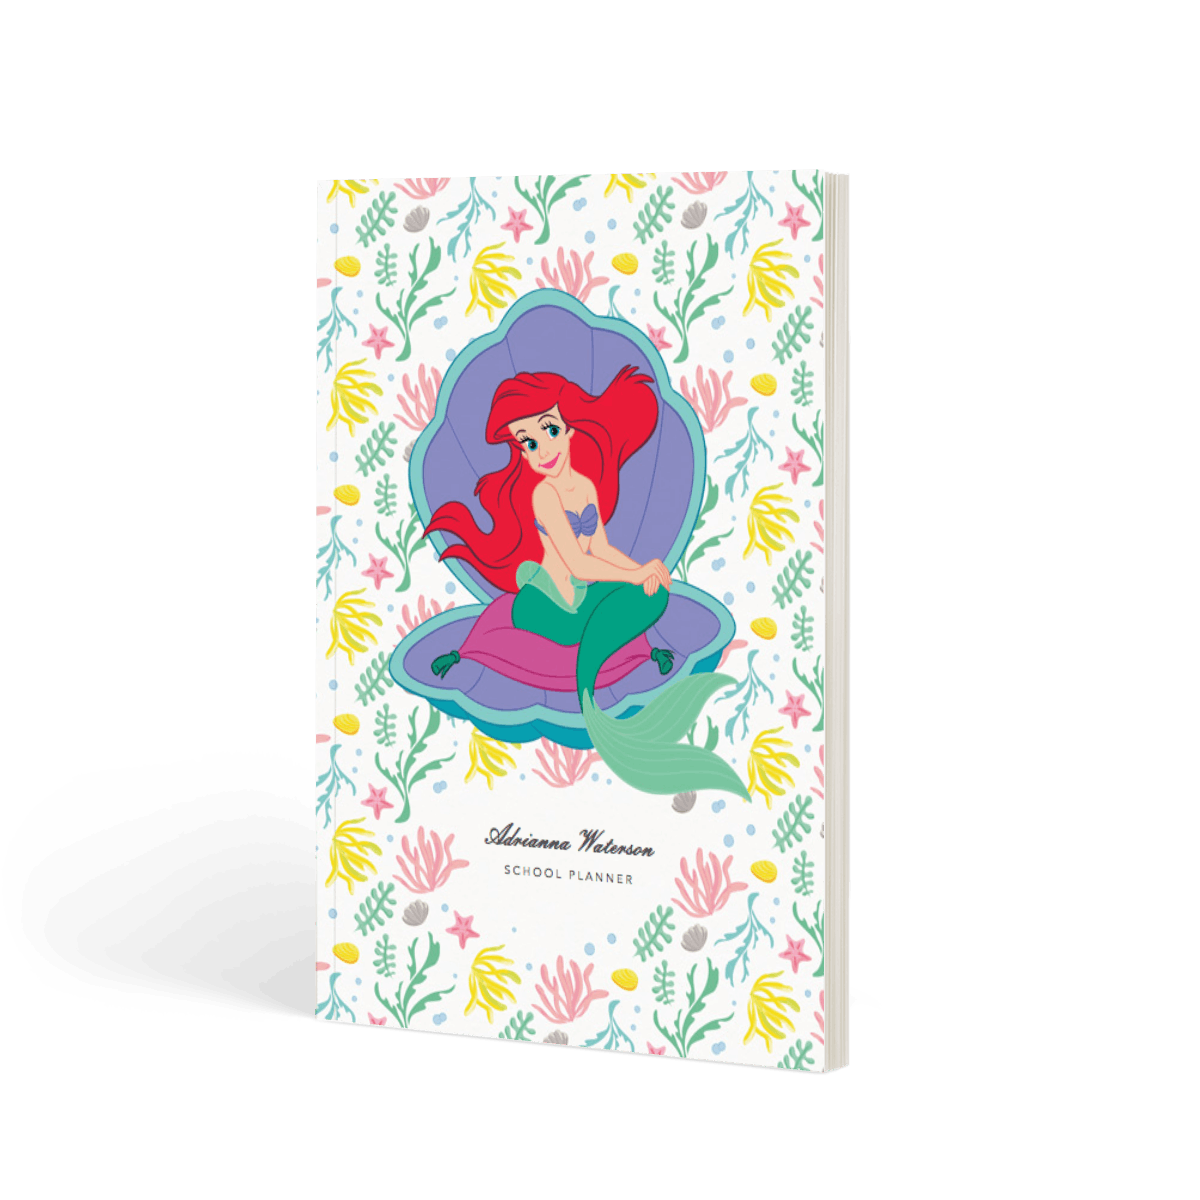 Https%3a%2f%2fwww.papier.com%2fproduct image%2f36811%2f7%2fthe little mermaid 9263 front 1524846629.png?ixlib=rb 1.1